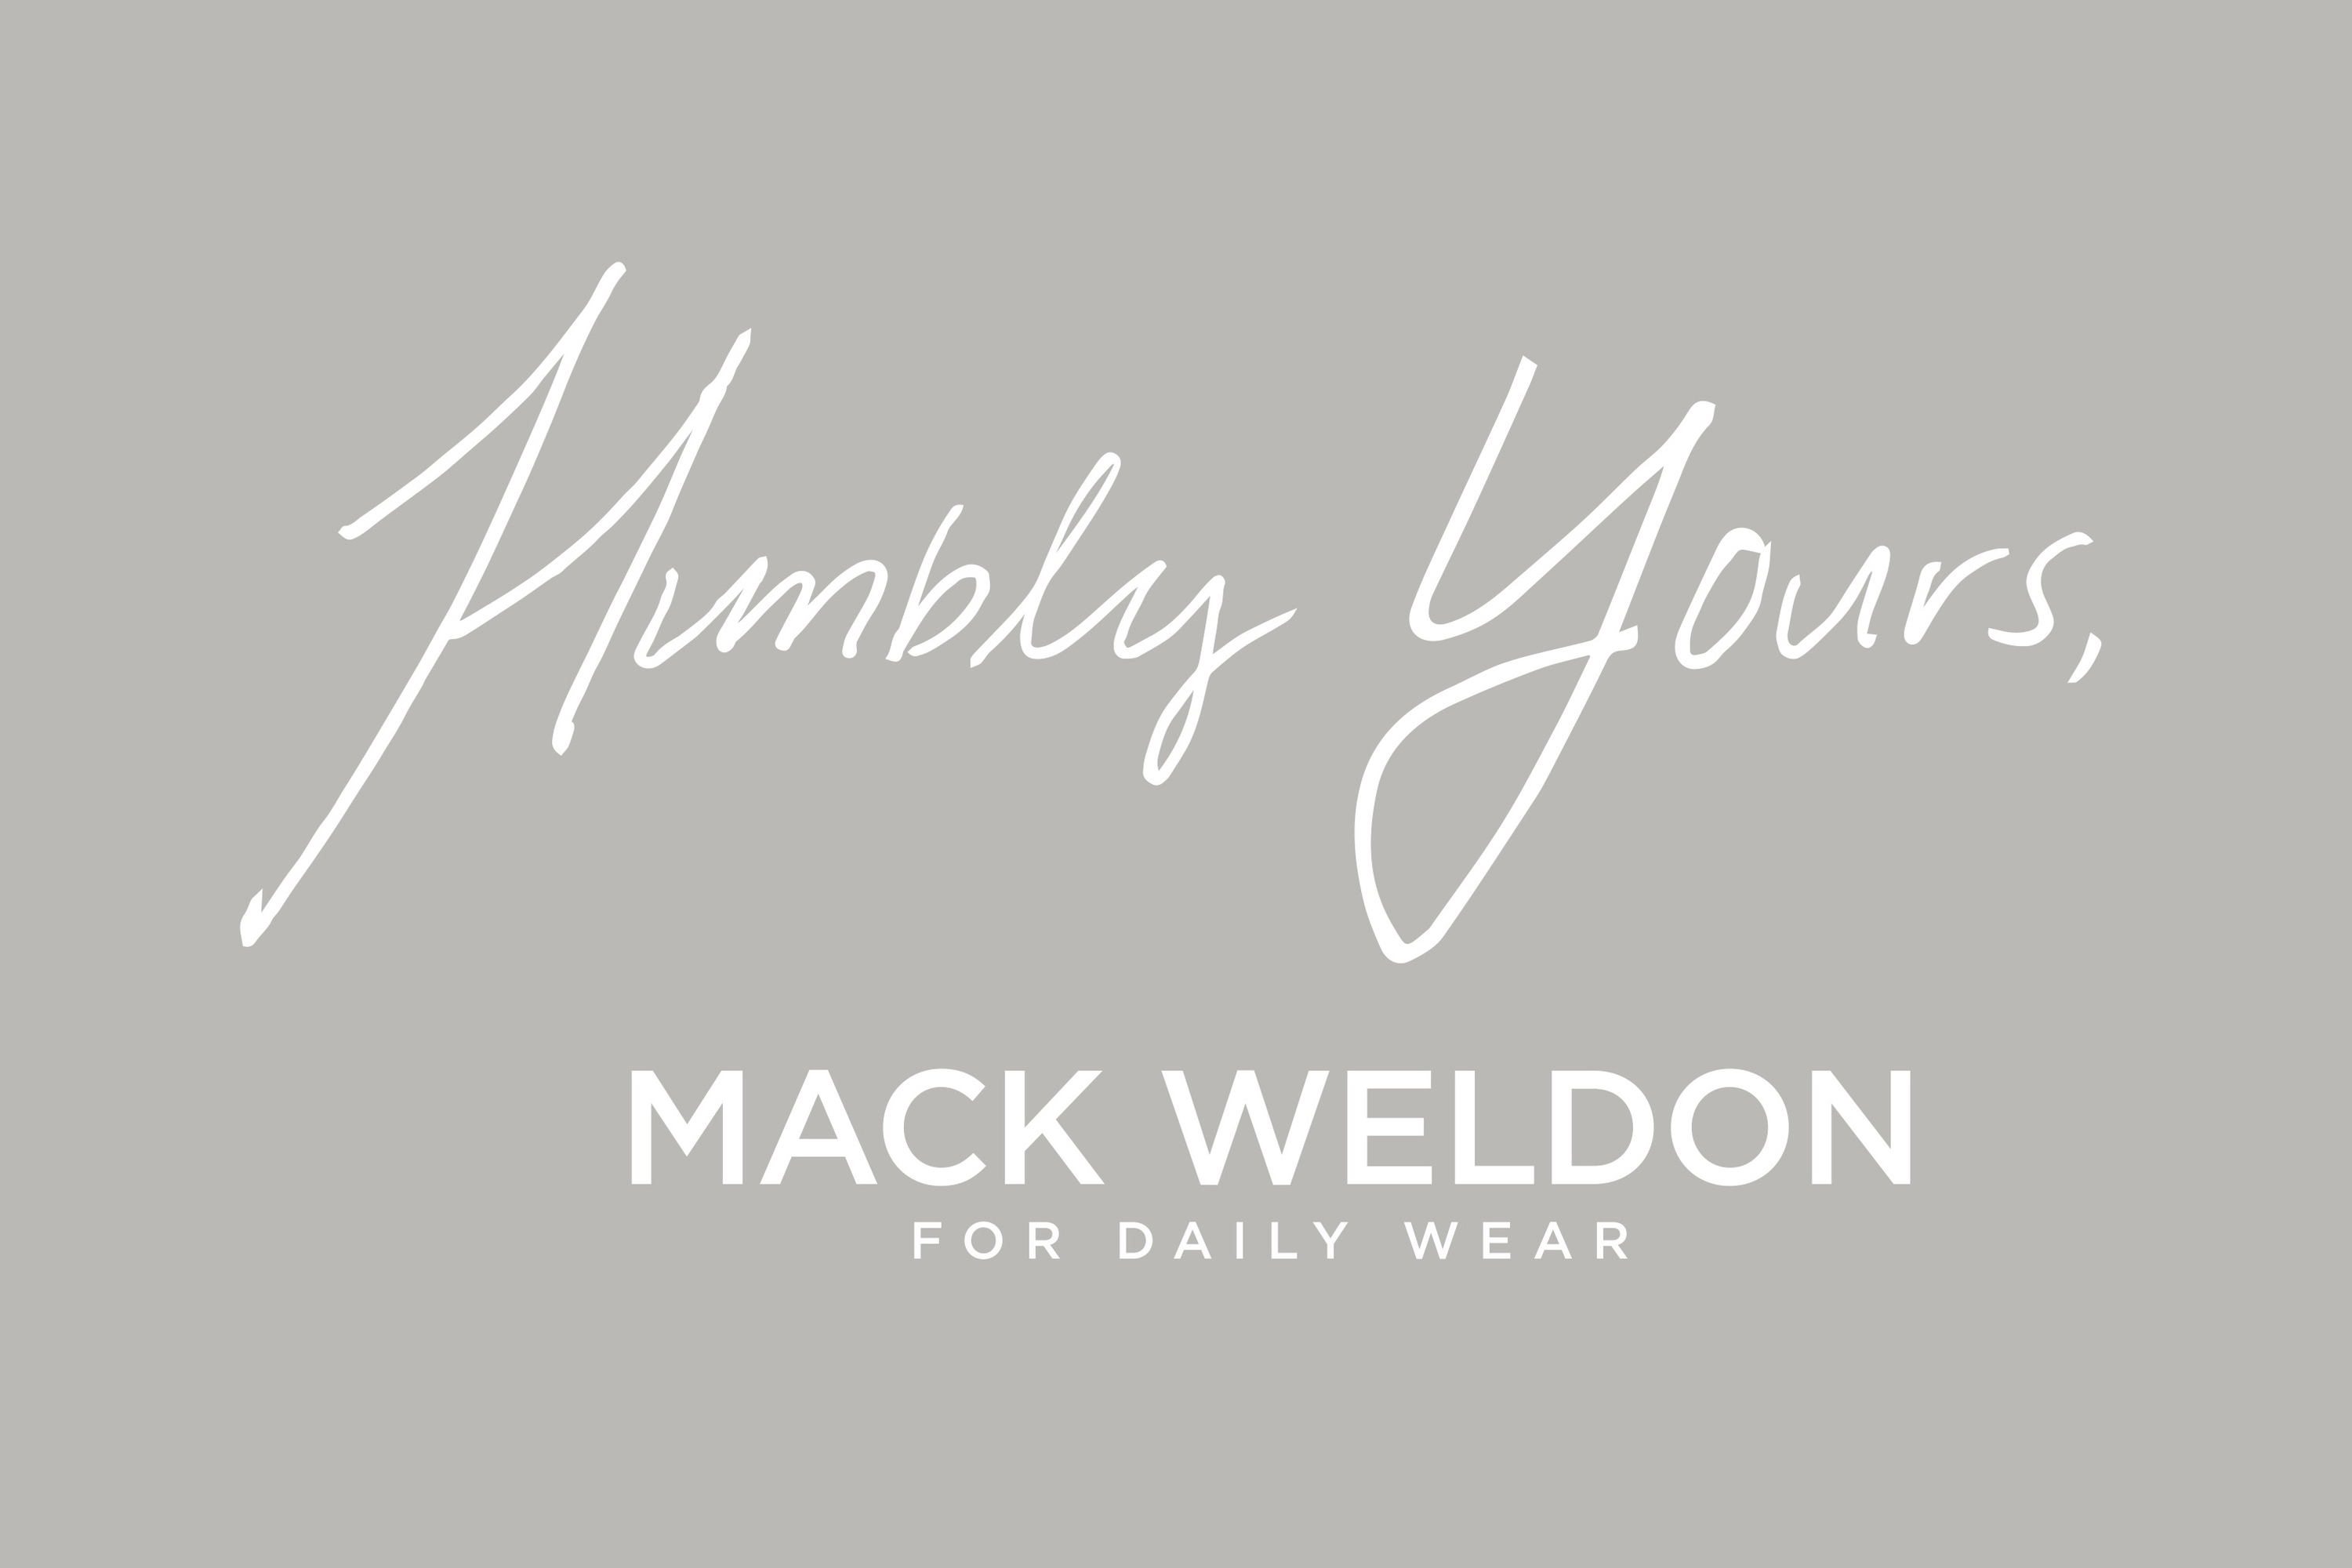 Mack Weldon: Humbly Yours